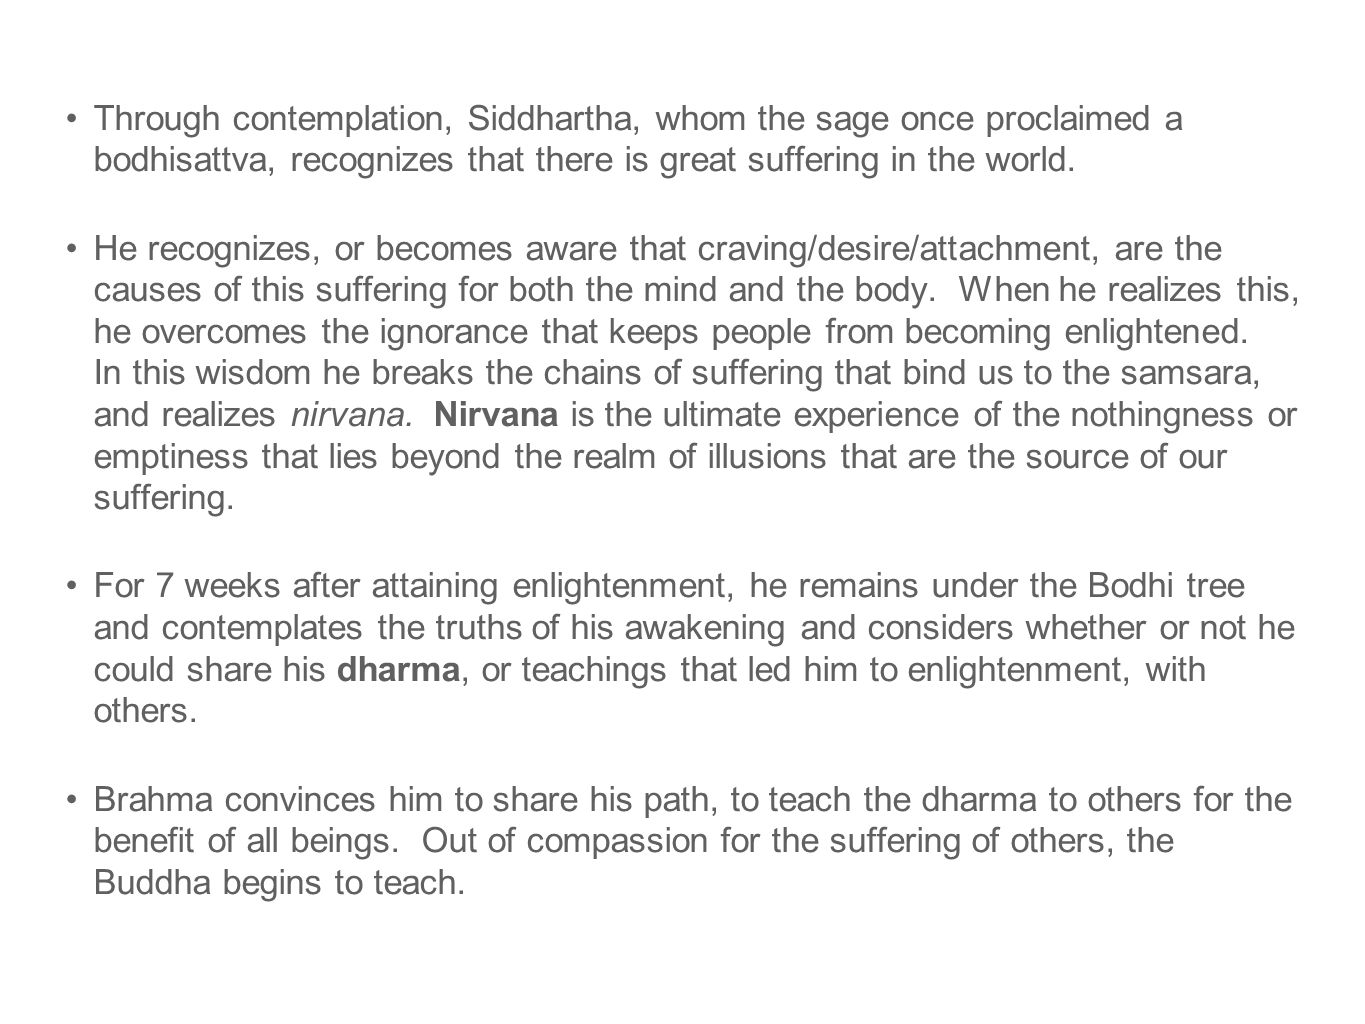 Through contemplation, Siddhartha, whom the sage once proclaimed a bodhisattva, recognizes that there is great suffering in the world.